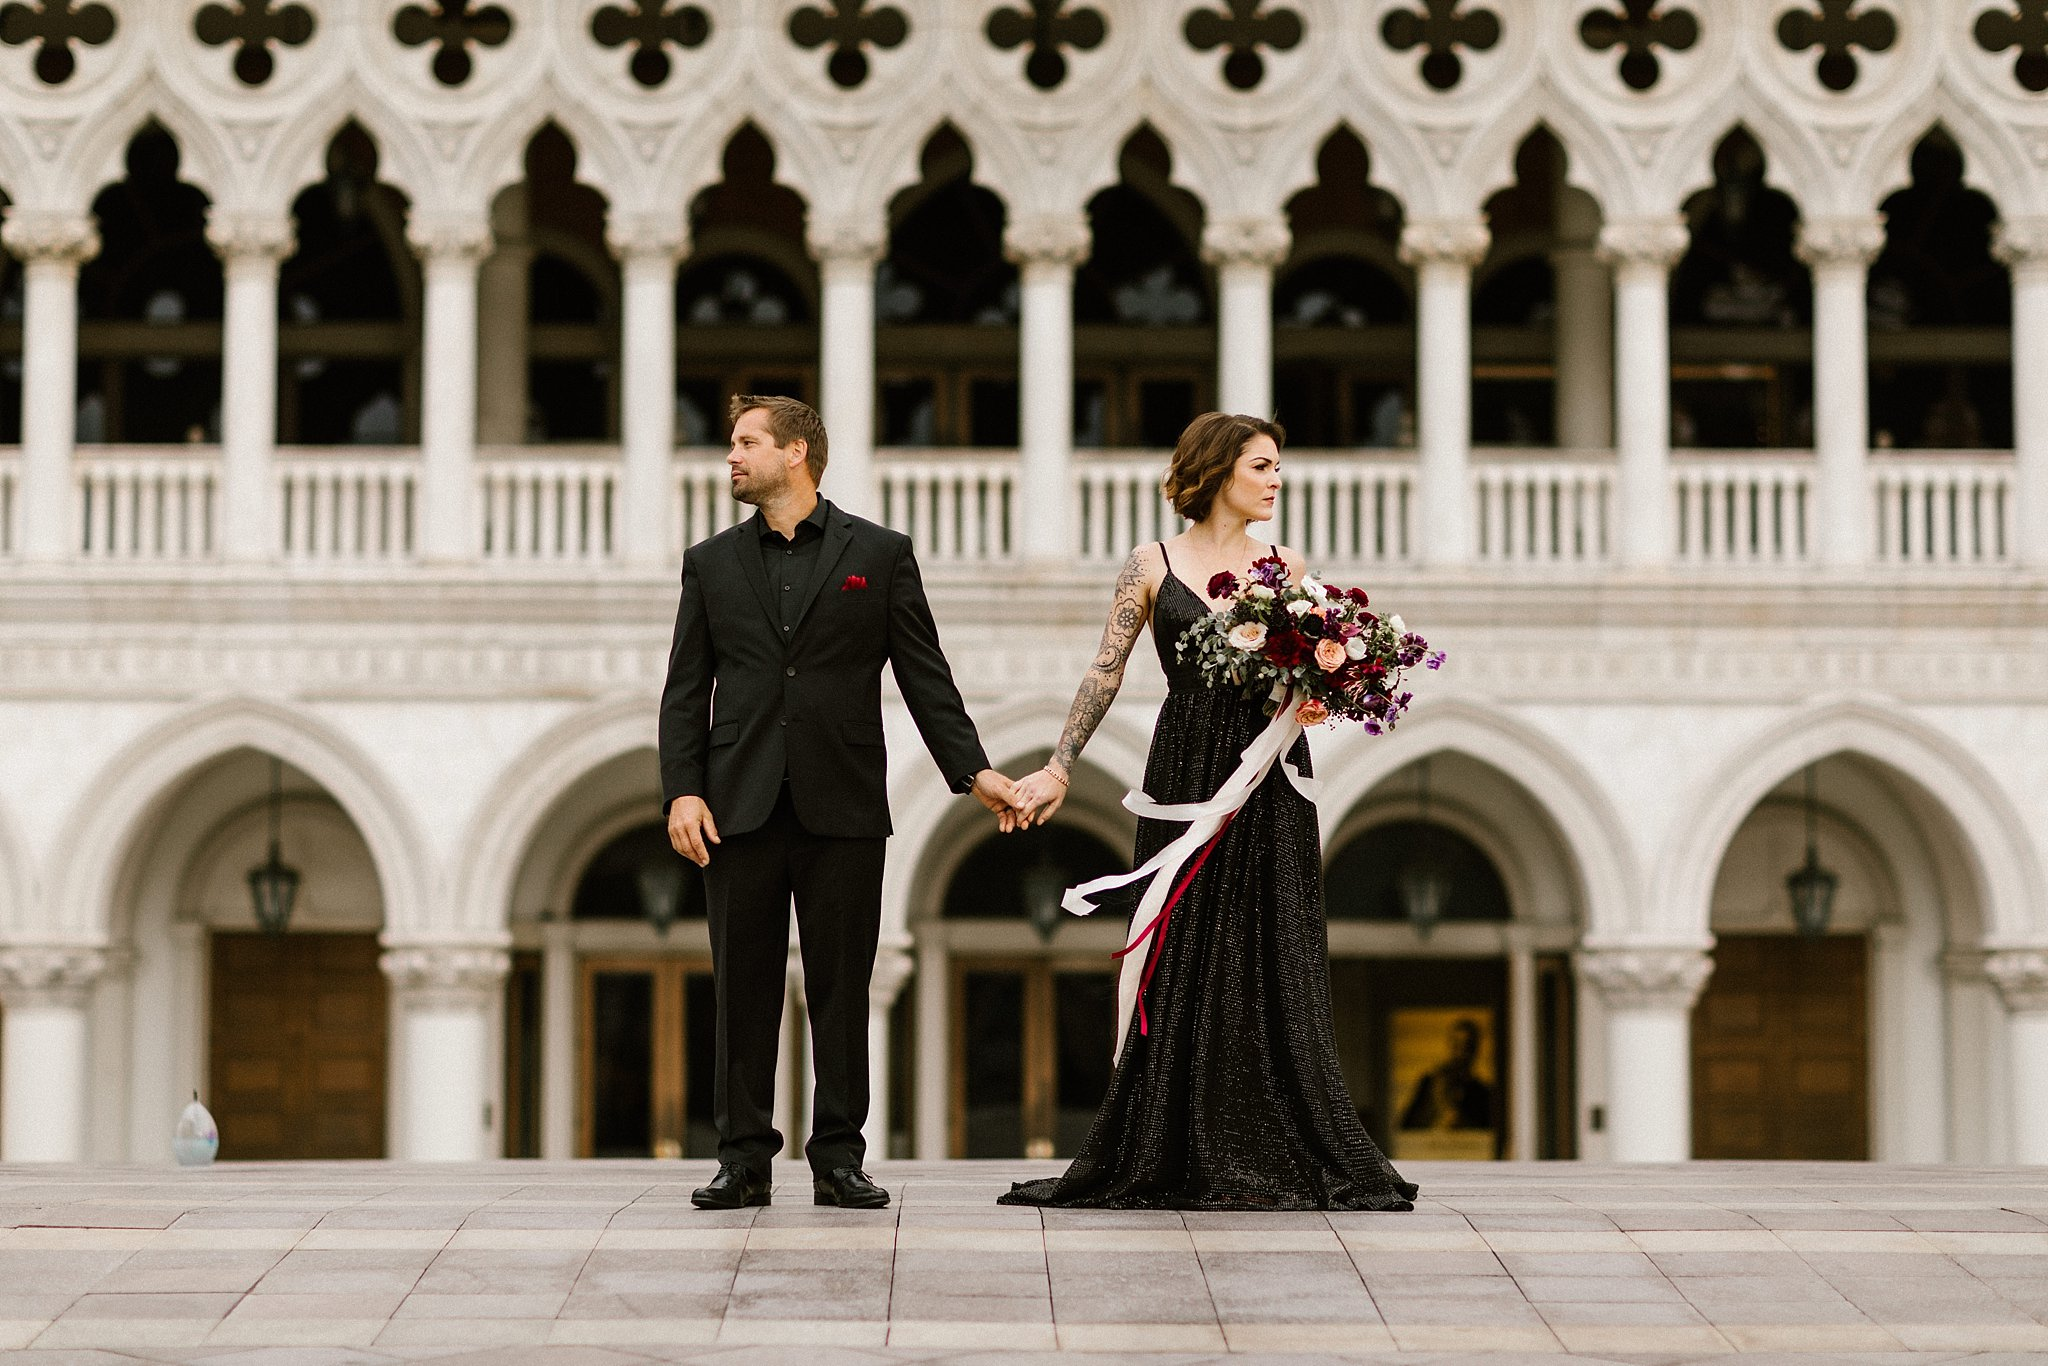 Kiersten & Mike // Las Vegas Elopement at The Venetian